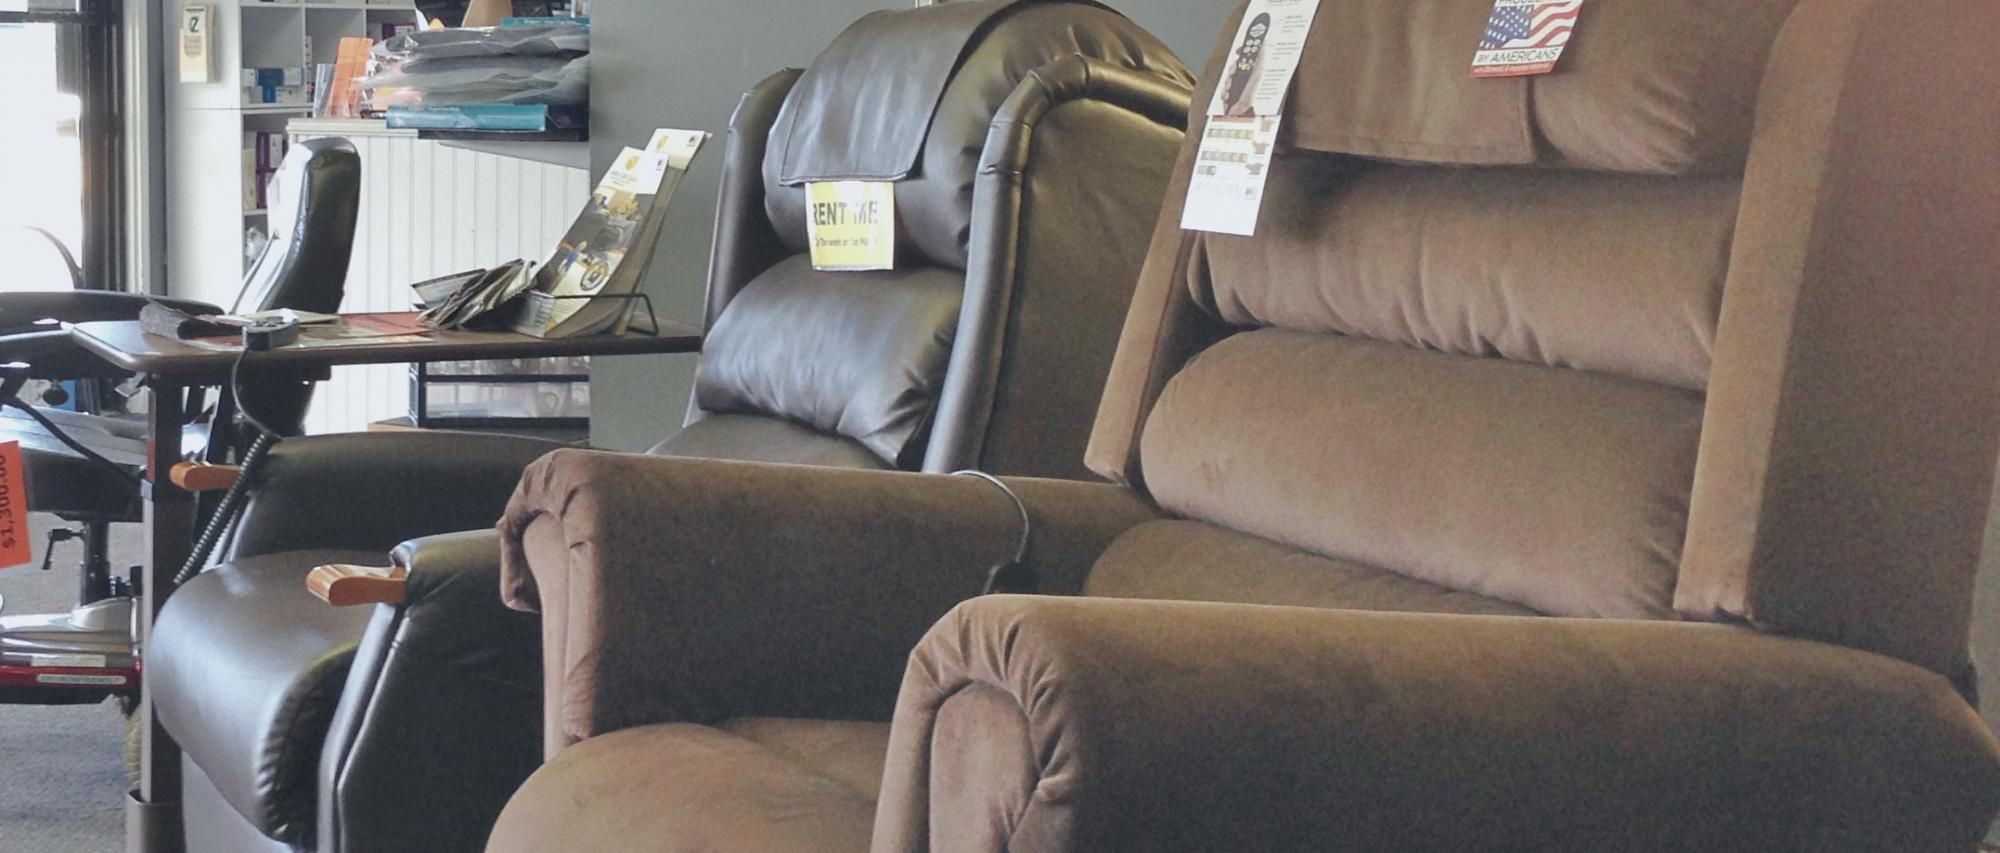 Golden Technology Lift Chairs, Eclipse Medical Lift Chairs